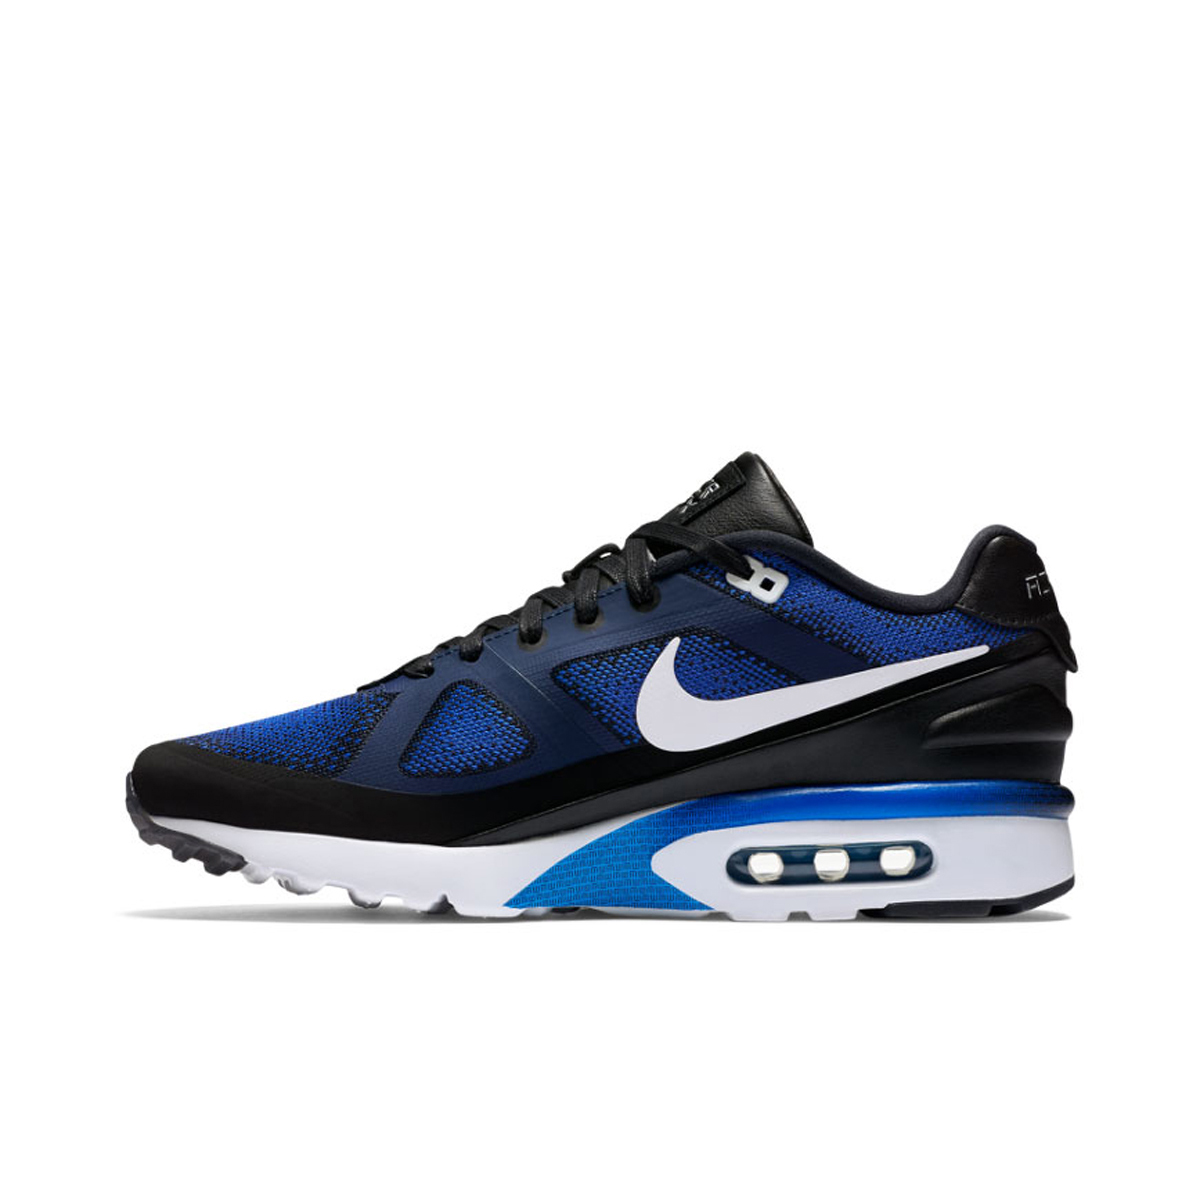 NIKE-AIR-MAX-MP-ULTRA-BY-MARK-PARKER-3